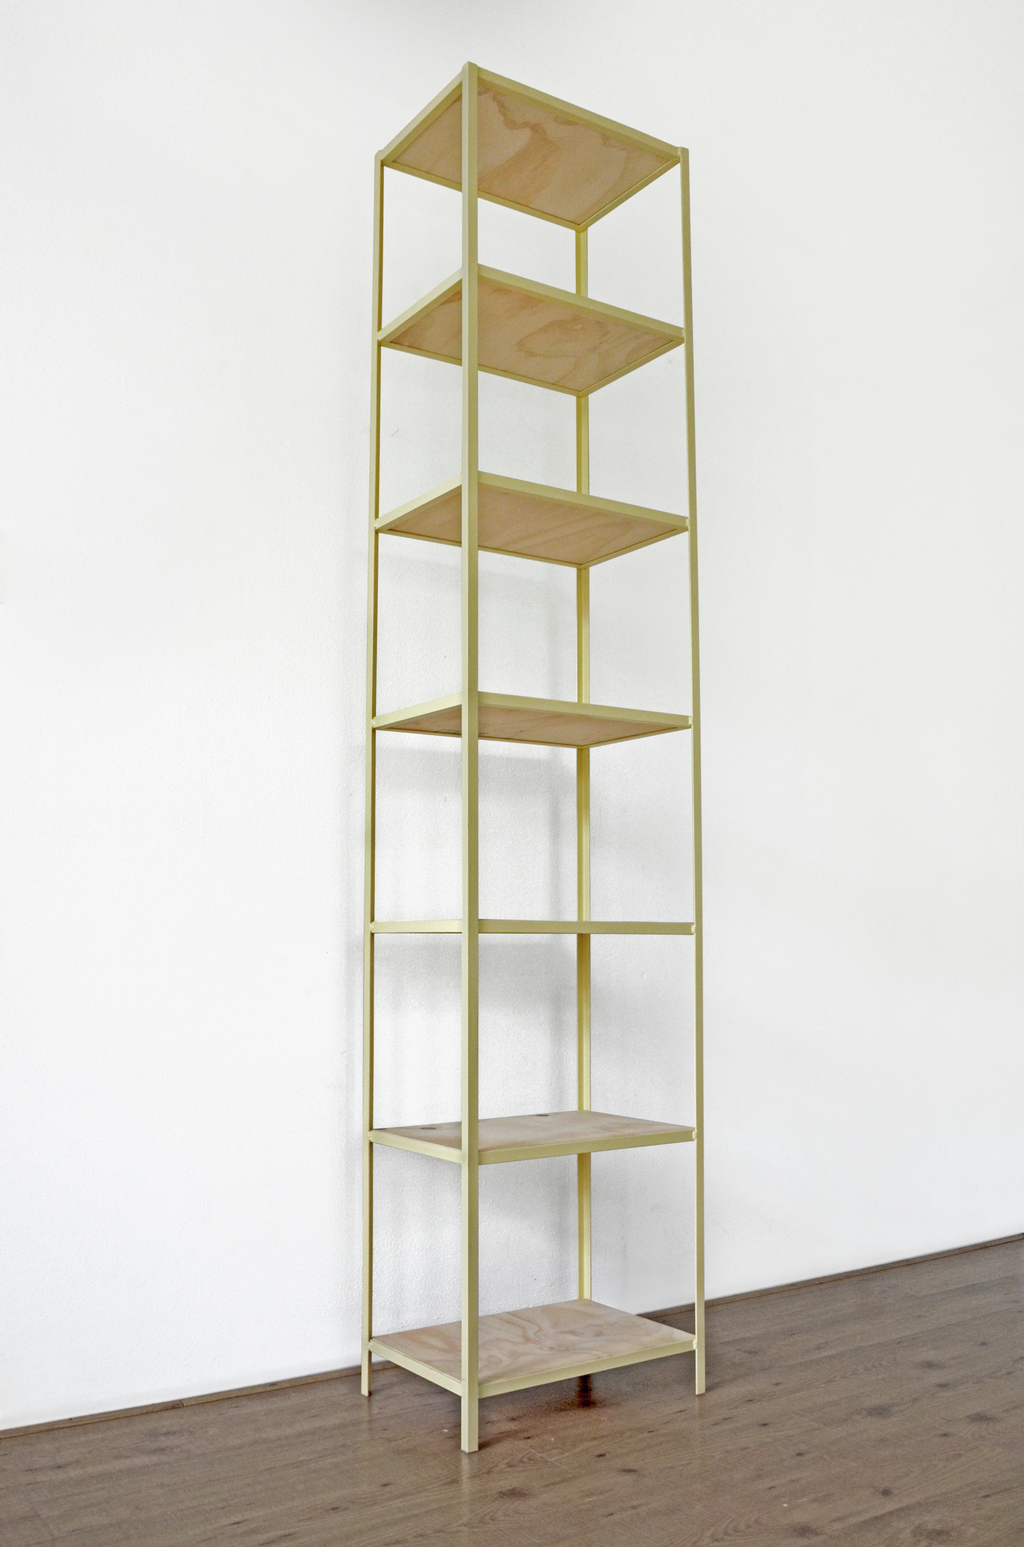 Metal welded frame from L profile with plywood planks. Can be used as a bookshelf or just for storage or display.